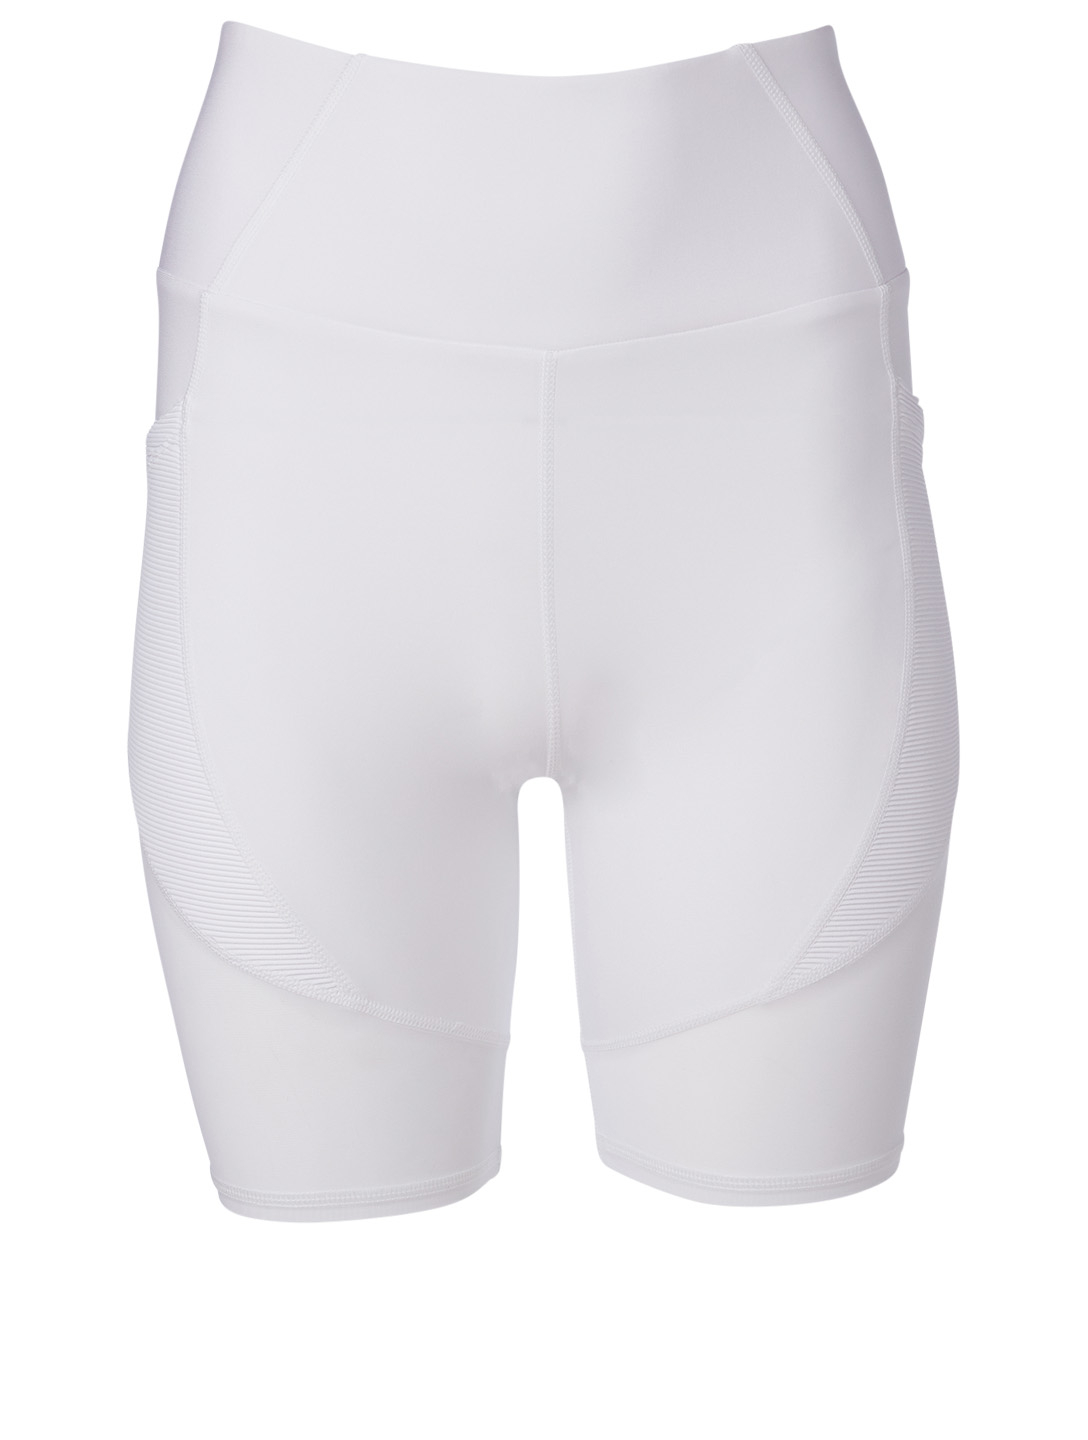 MICHI Circuit Bike Shorts Women's White